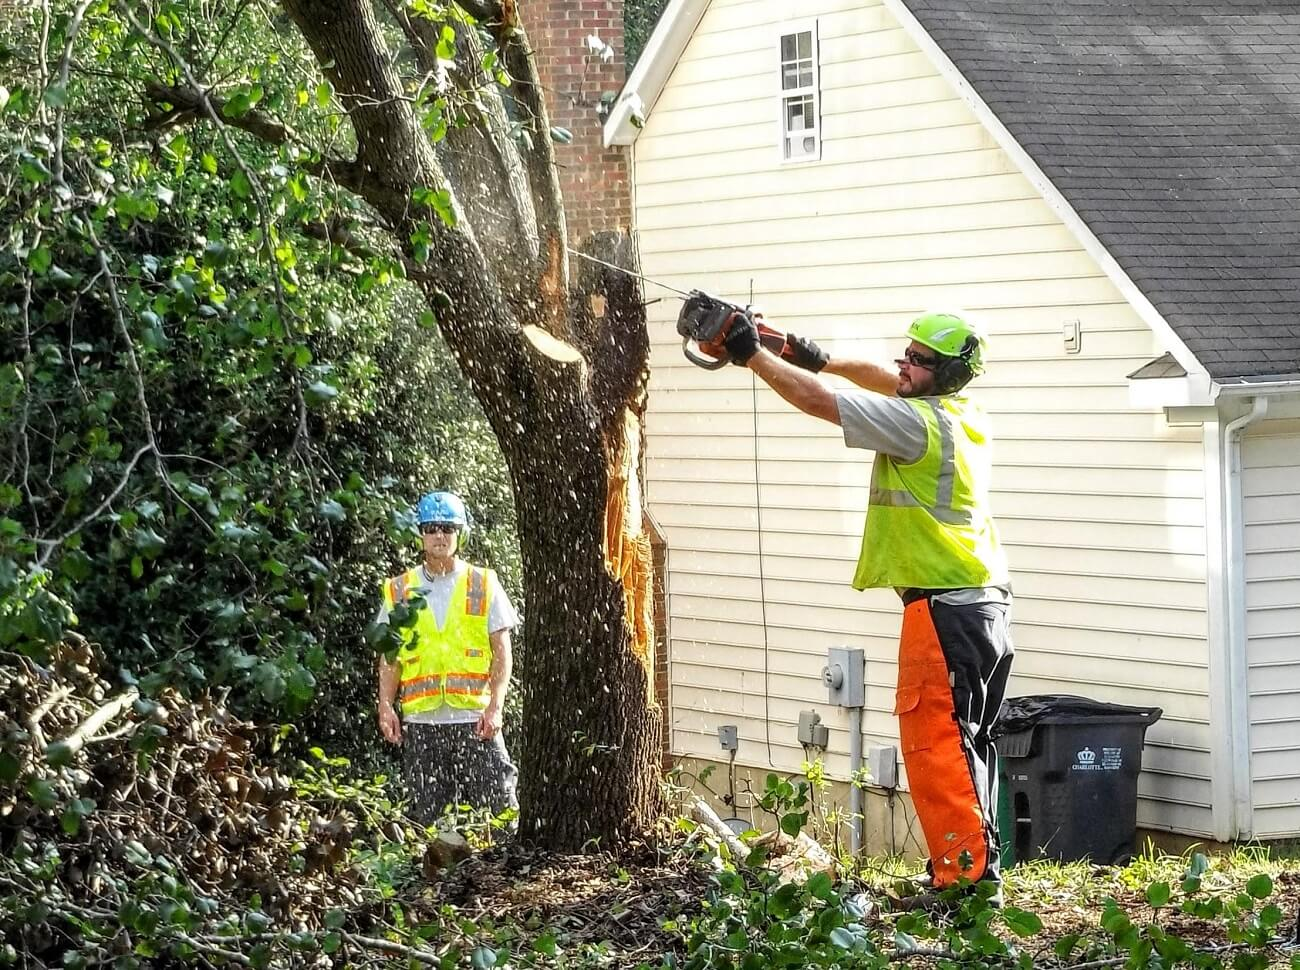 Wimauma FL Tree Trimming and Stump Grinding Services Home Page Image-We Offer Tree Trimming Services, Tree Removal, Tree Pruning, Tree Cutting, Residential and Commercial Tree Trimming Services, Storm Damage, Emergency Tree Removal, Land Clearing, Tree Companies, Tree Care Service, Stump Grinding, and we're the Best Tree Trimming Company Near You Guaranteed!